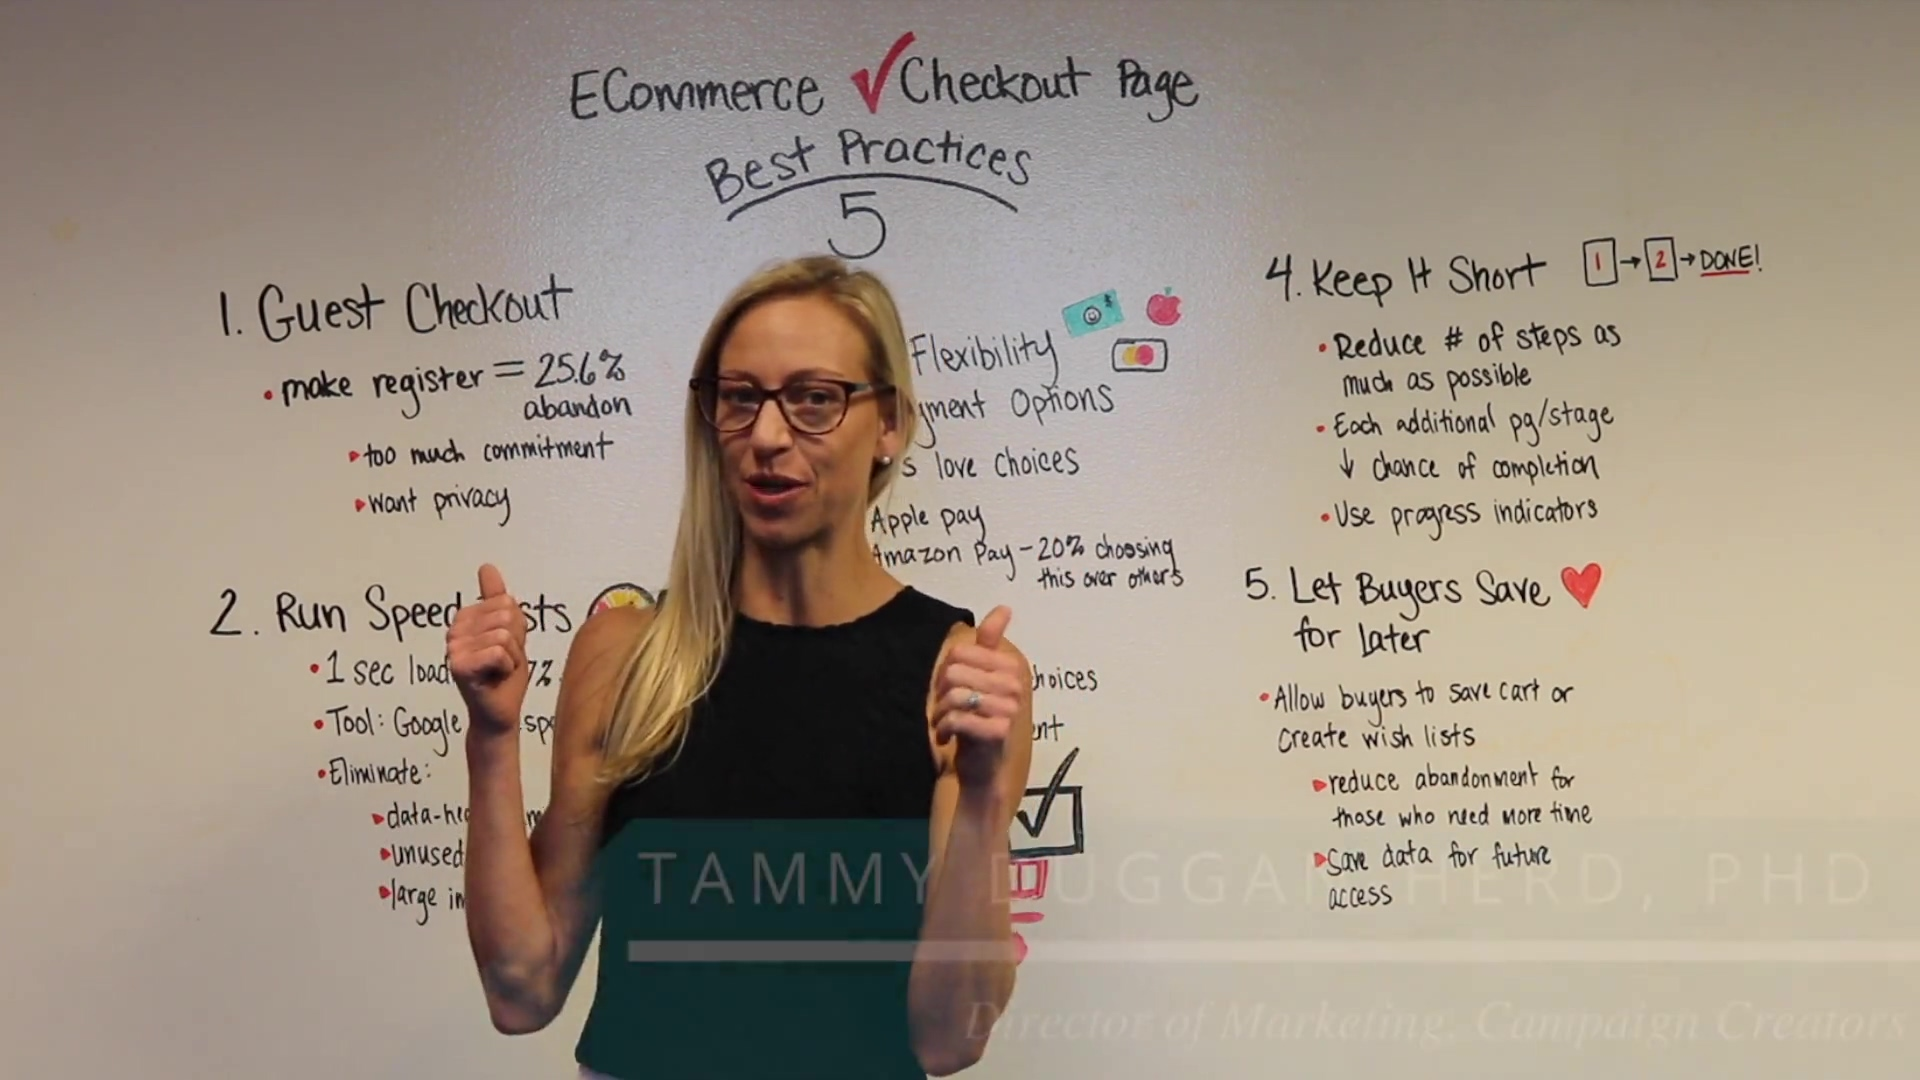 Whiteboard-Ecommerce-Checkout-Best-Practices-LinkedIn-3